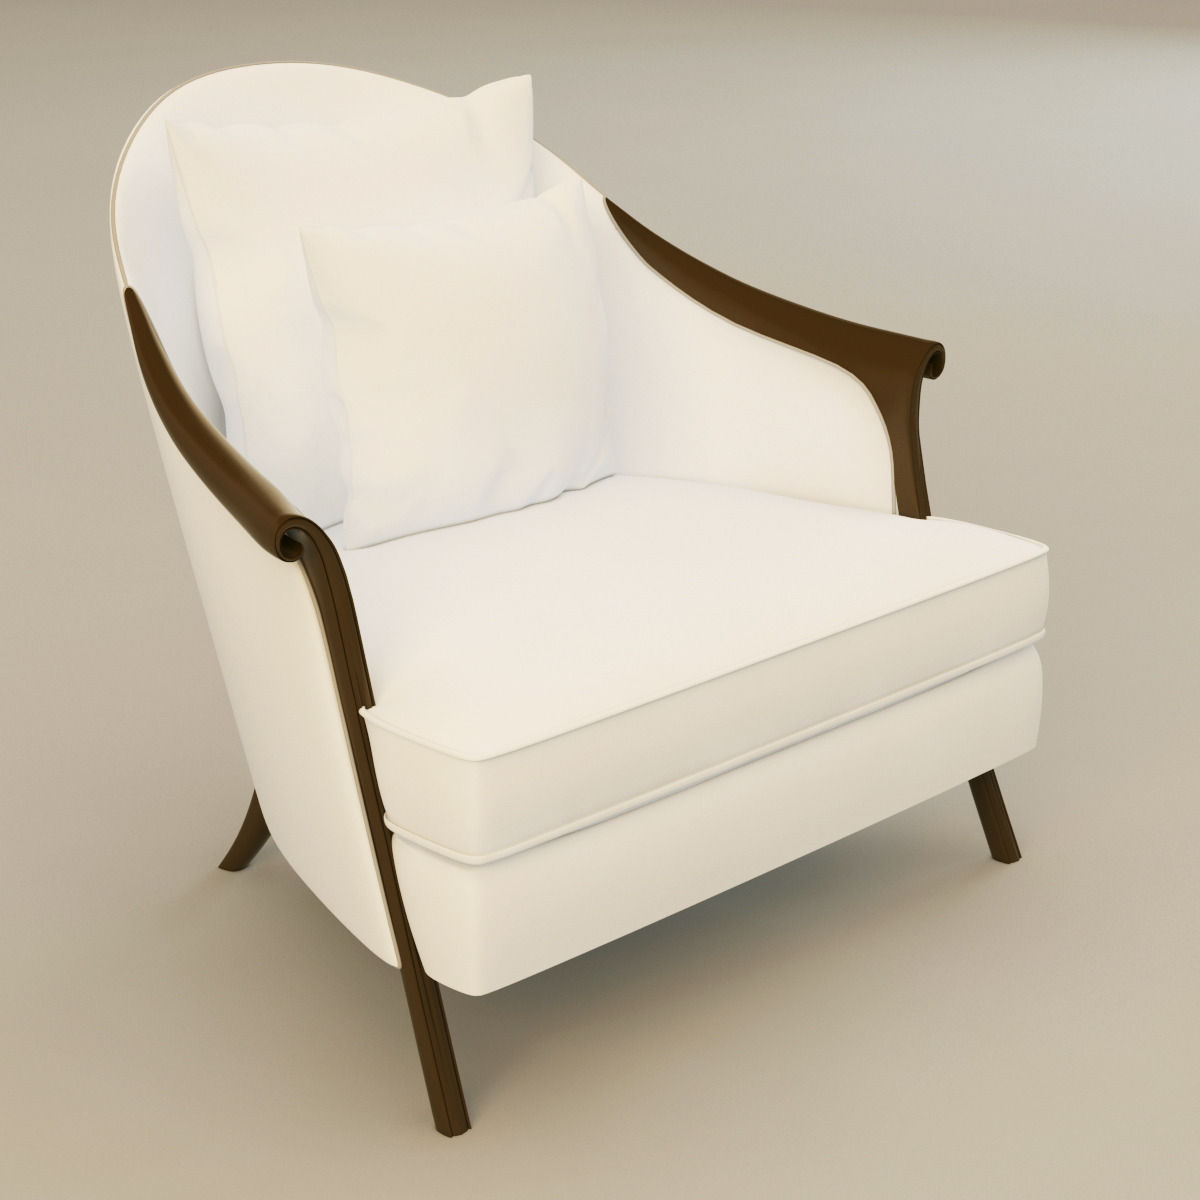 Attractive Christopher Guy Poltrona Armchair 3d Model Max Obj 3ds Fbx Mtl 1 ...